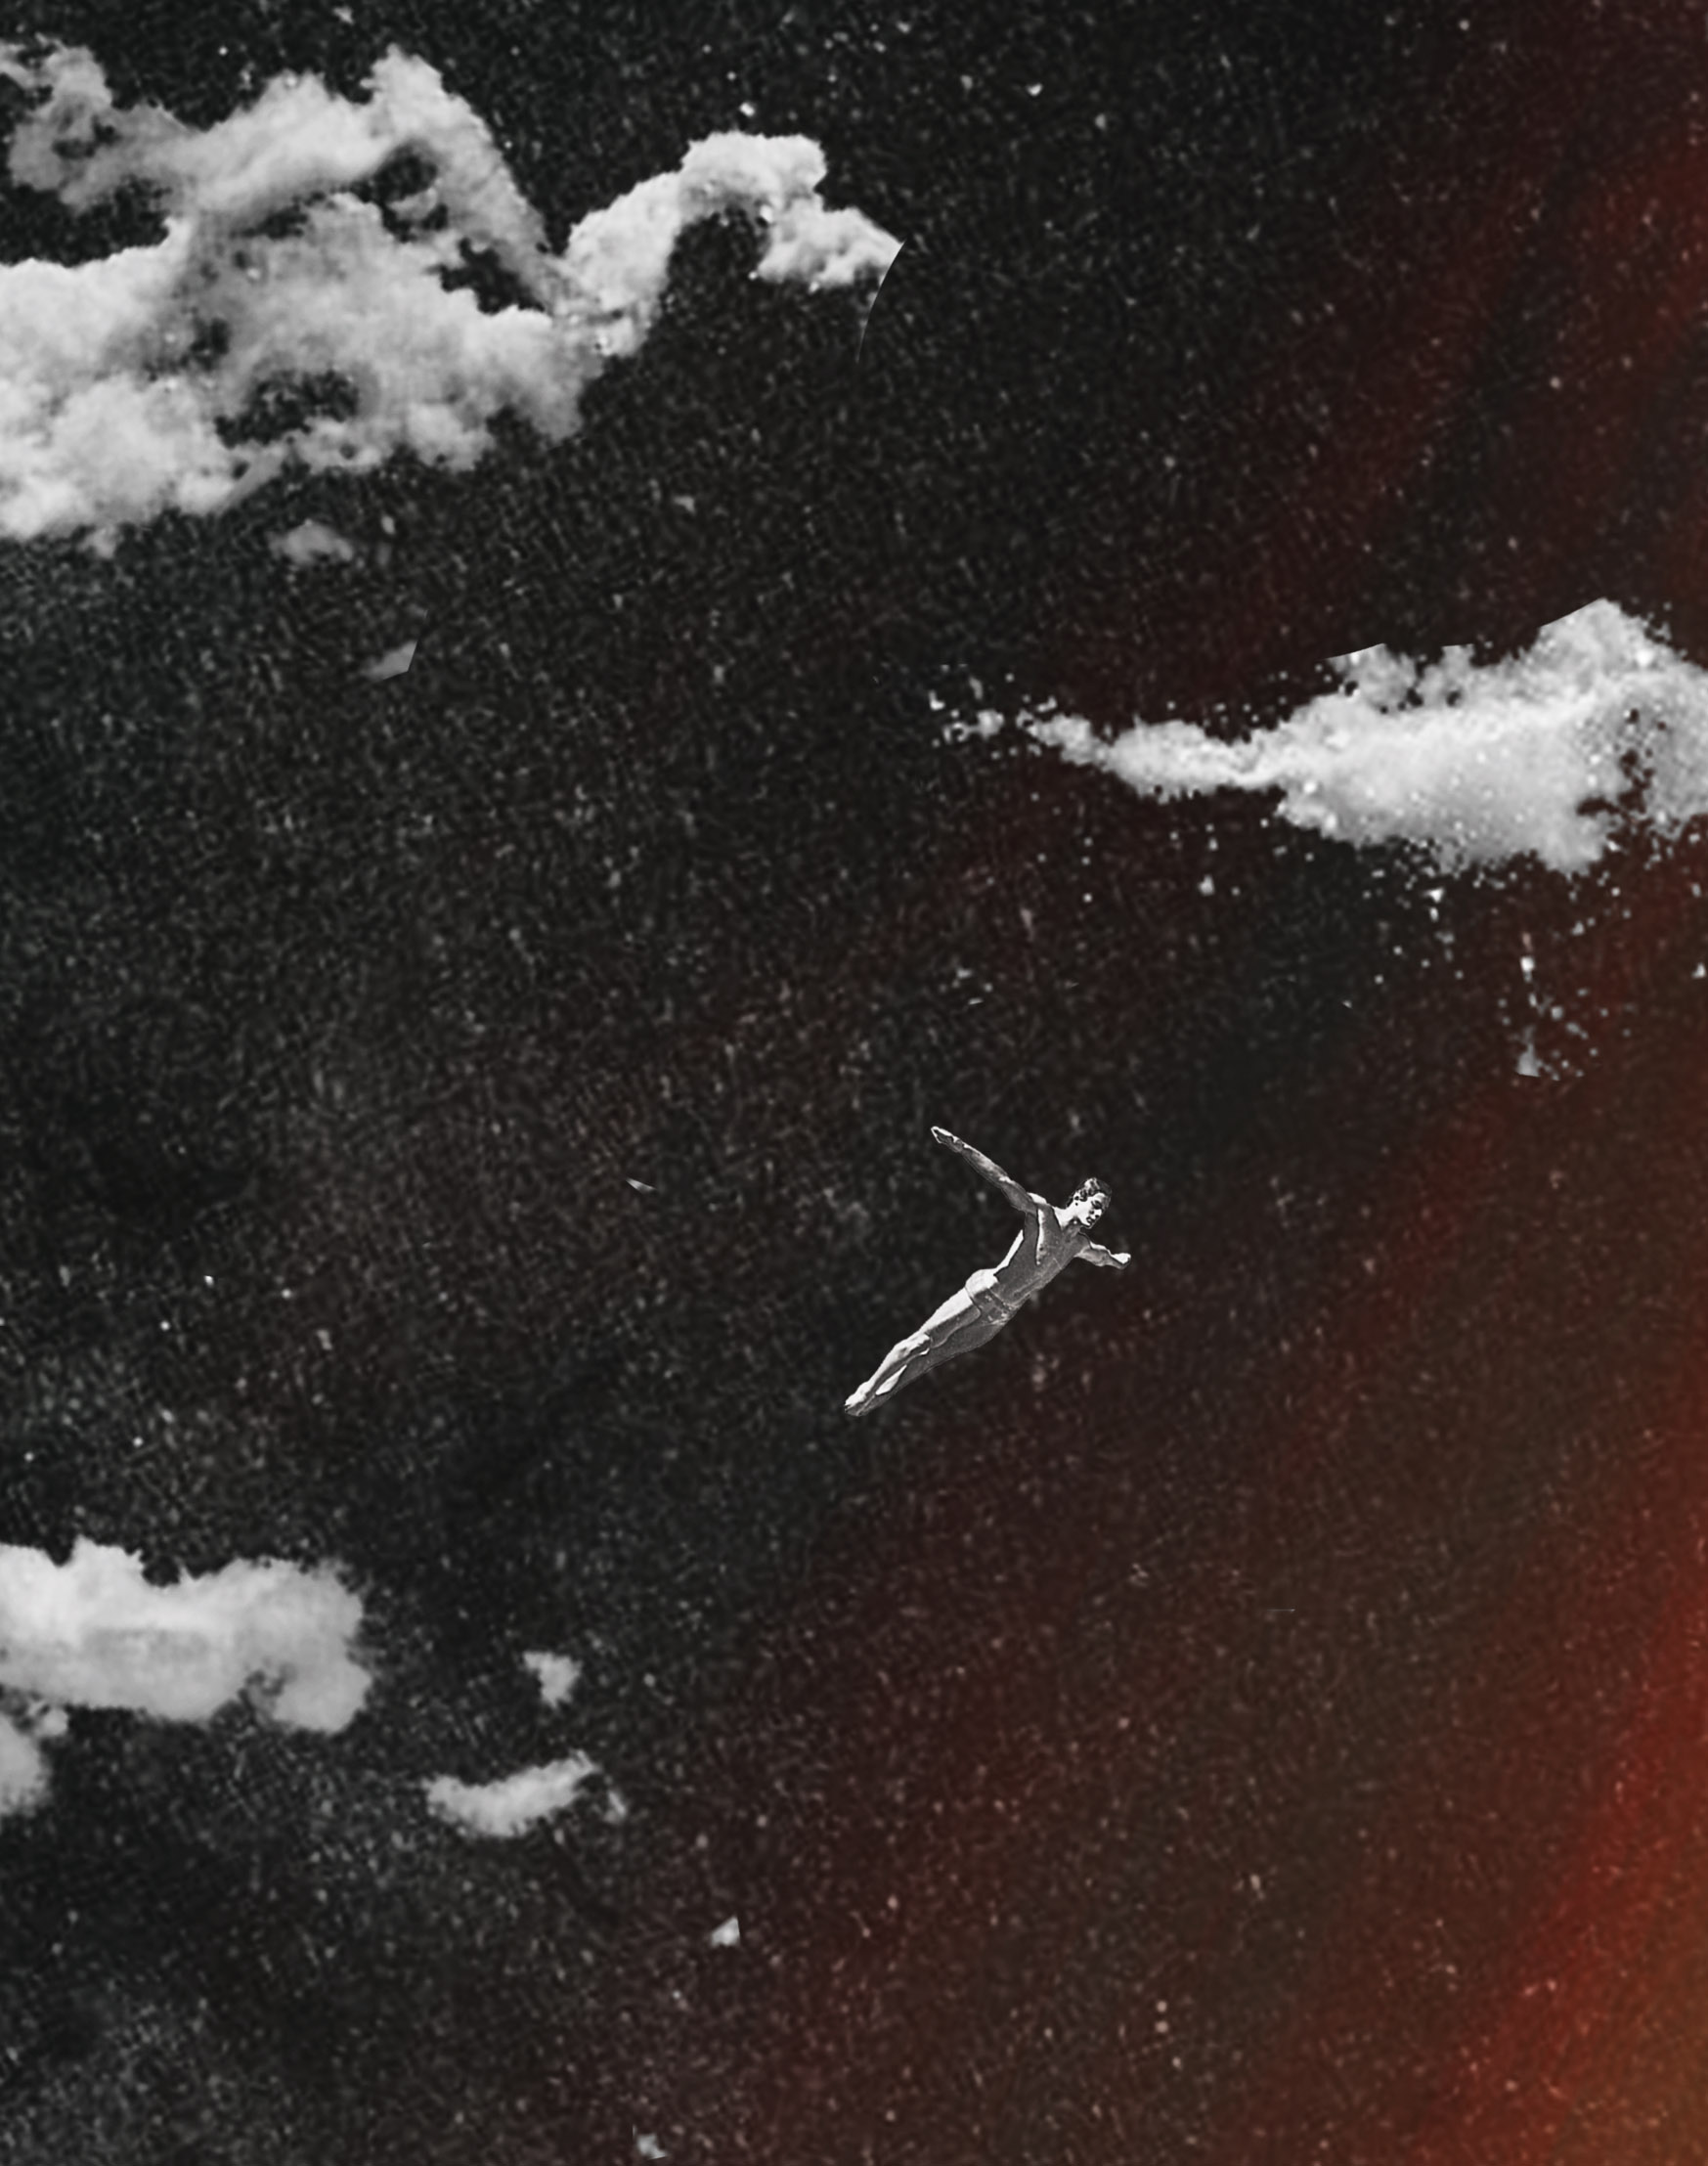 Skydivers_RAINDROPCroppedCropped12.jpg